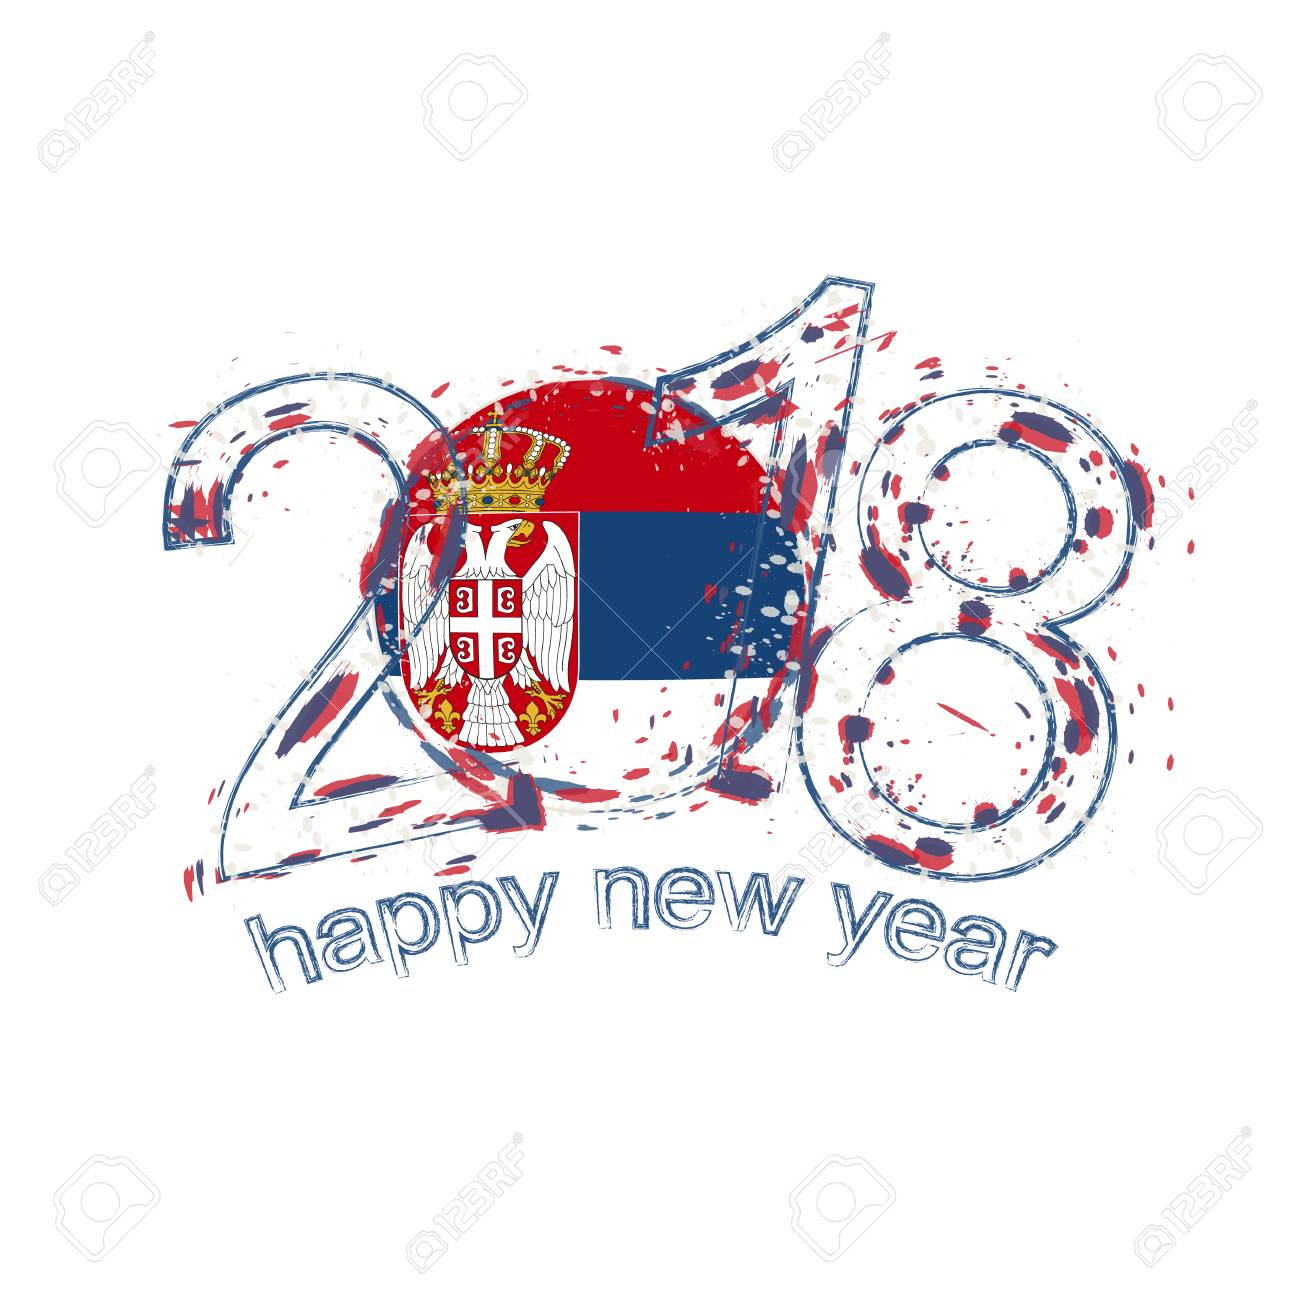 2018 happy new year serbia grunge vector template for greeting 2018 happy new year serbia grunge vector template for greeting card calendars 2018 seasonal m4hsunfo